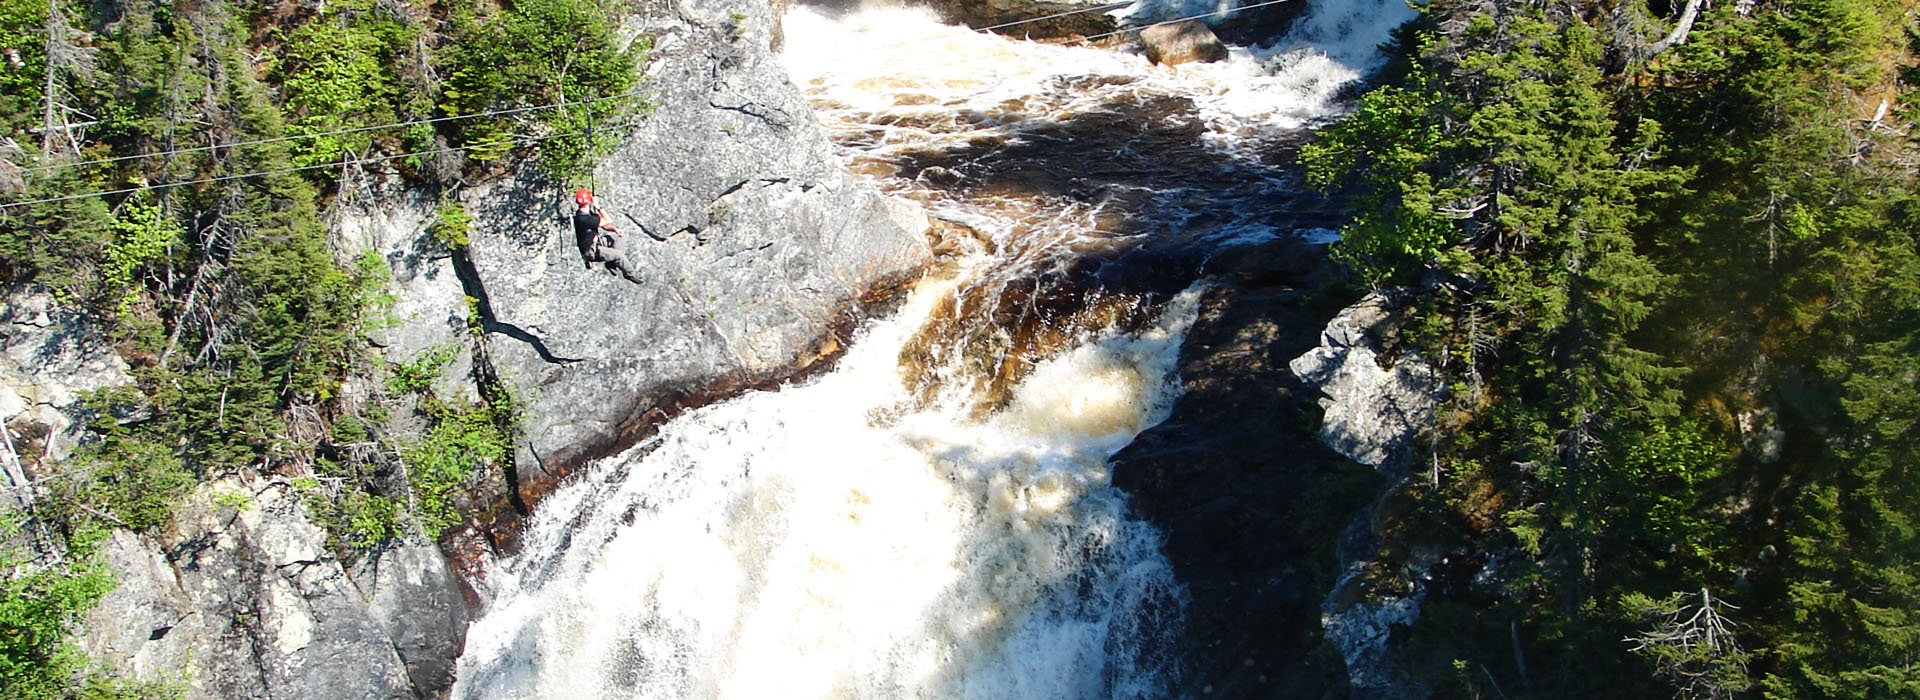 Over The Falls Tours Email Address